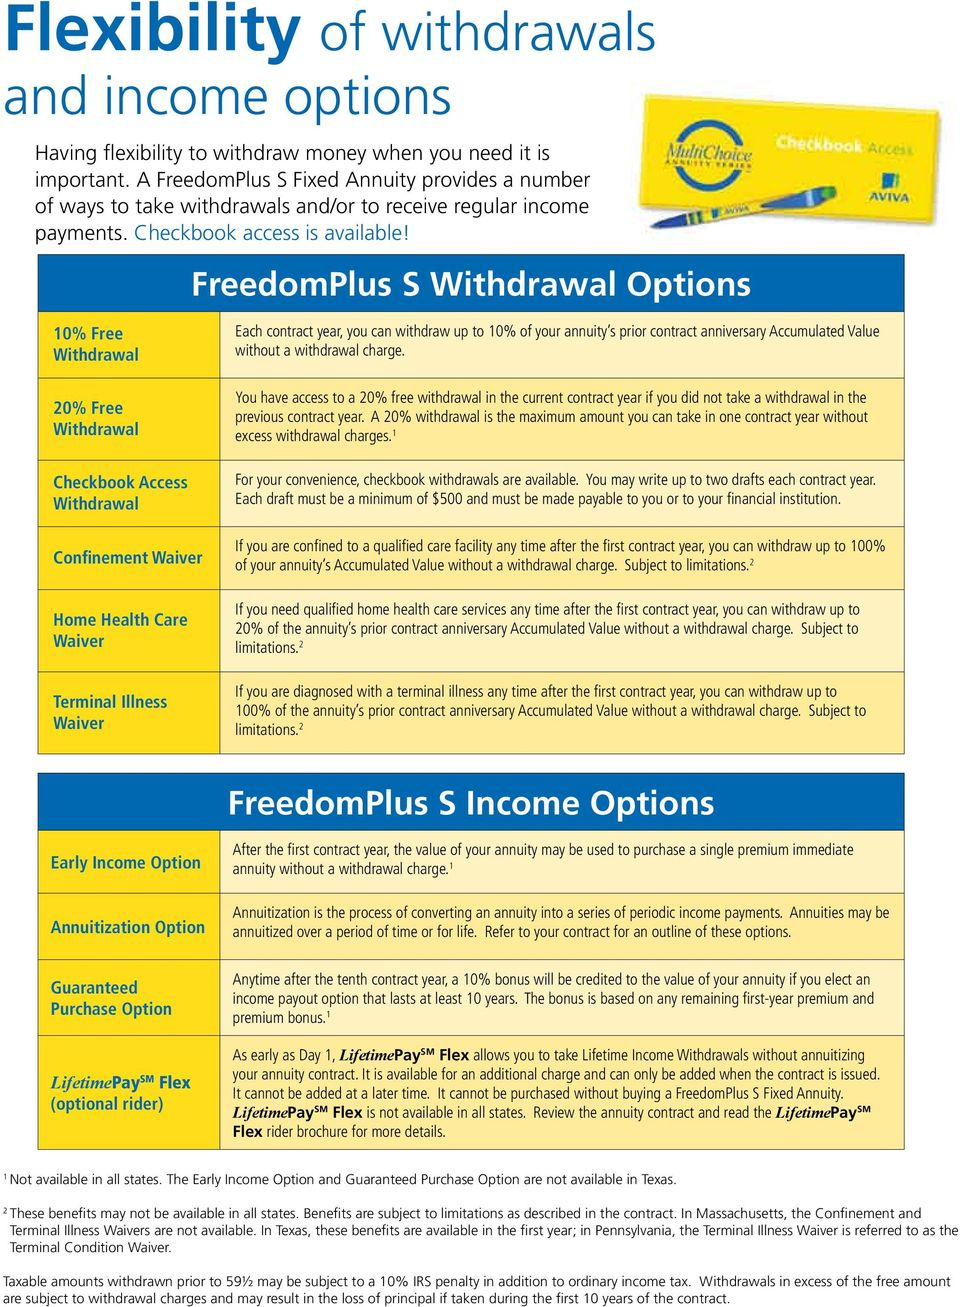 FreedomPlus S Withdrawal Options 0% Free Withdrawal 20% Free Withdrawal Checkbook Access Withdrawal Confinement Waiver Home Health Care Waiver Terminal Illness Waiver Each contract year, you can